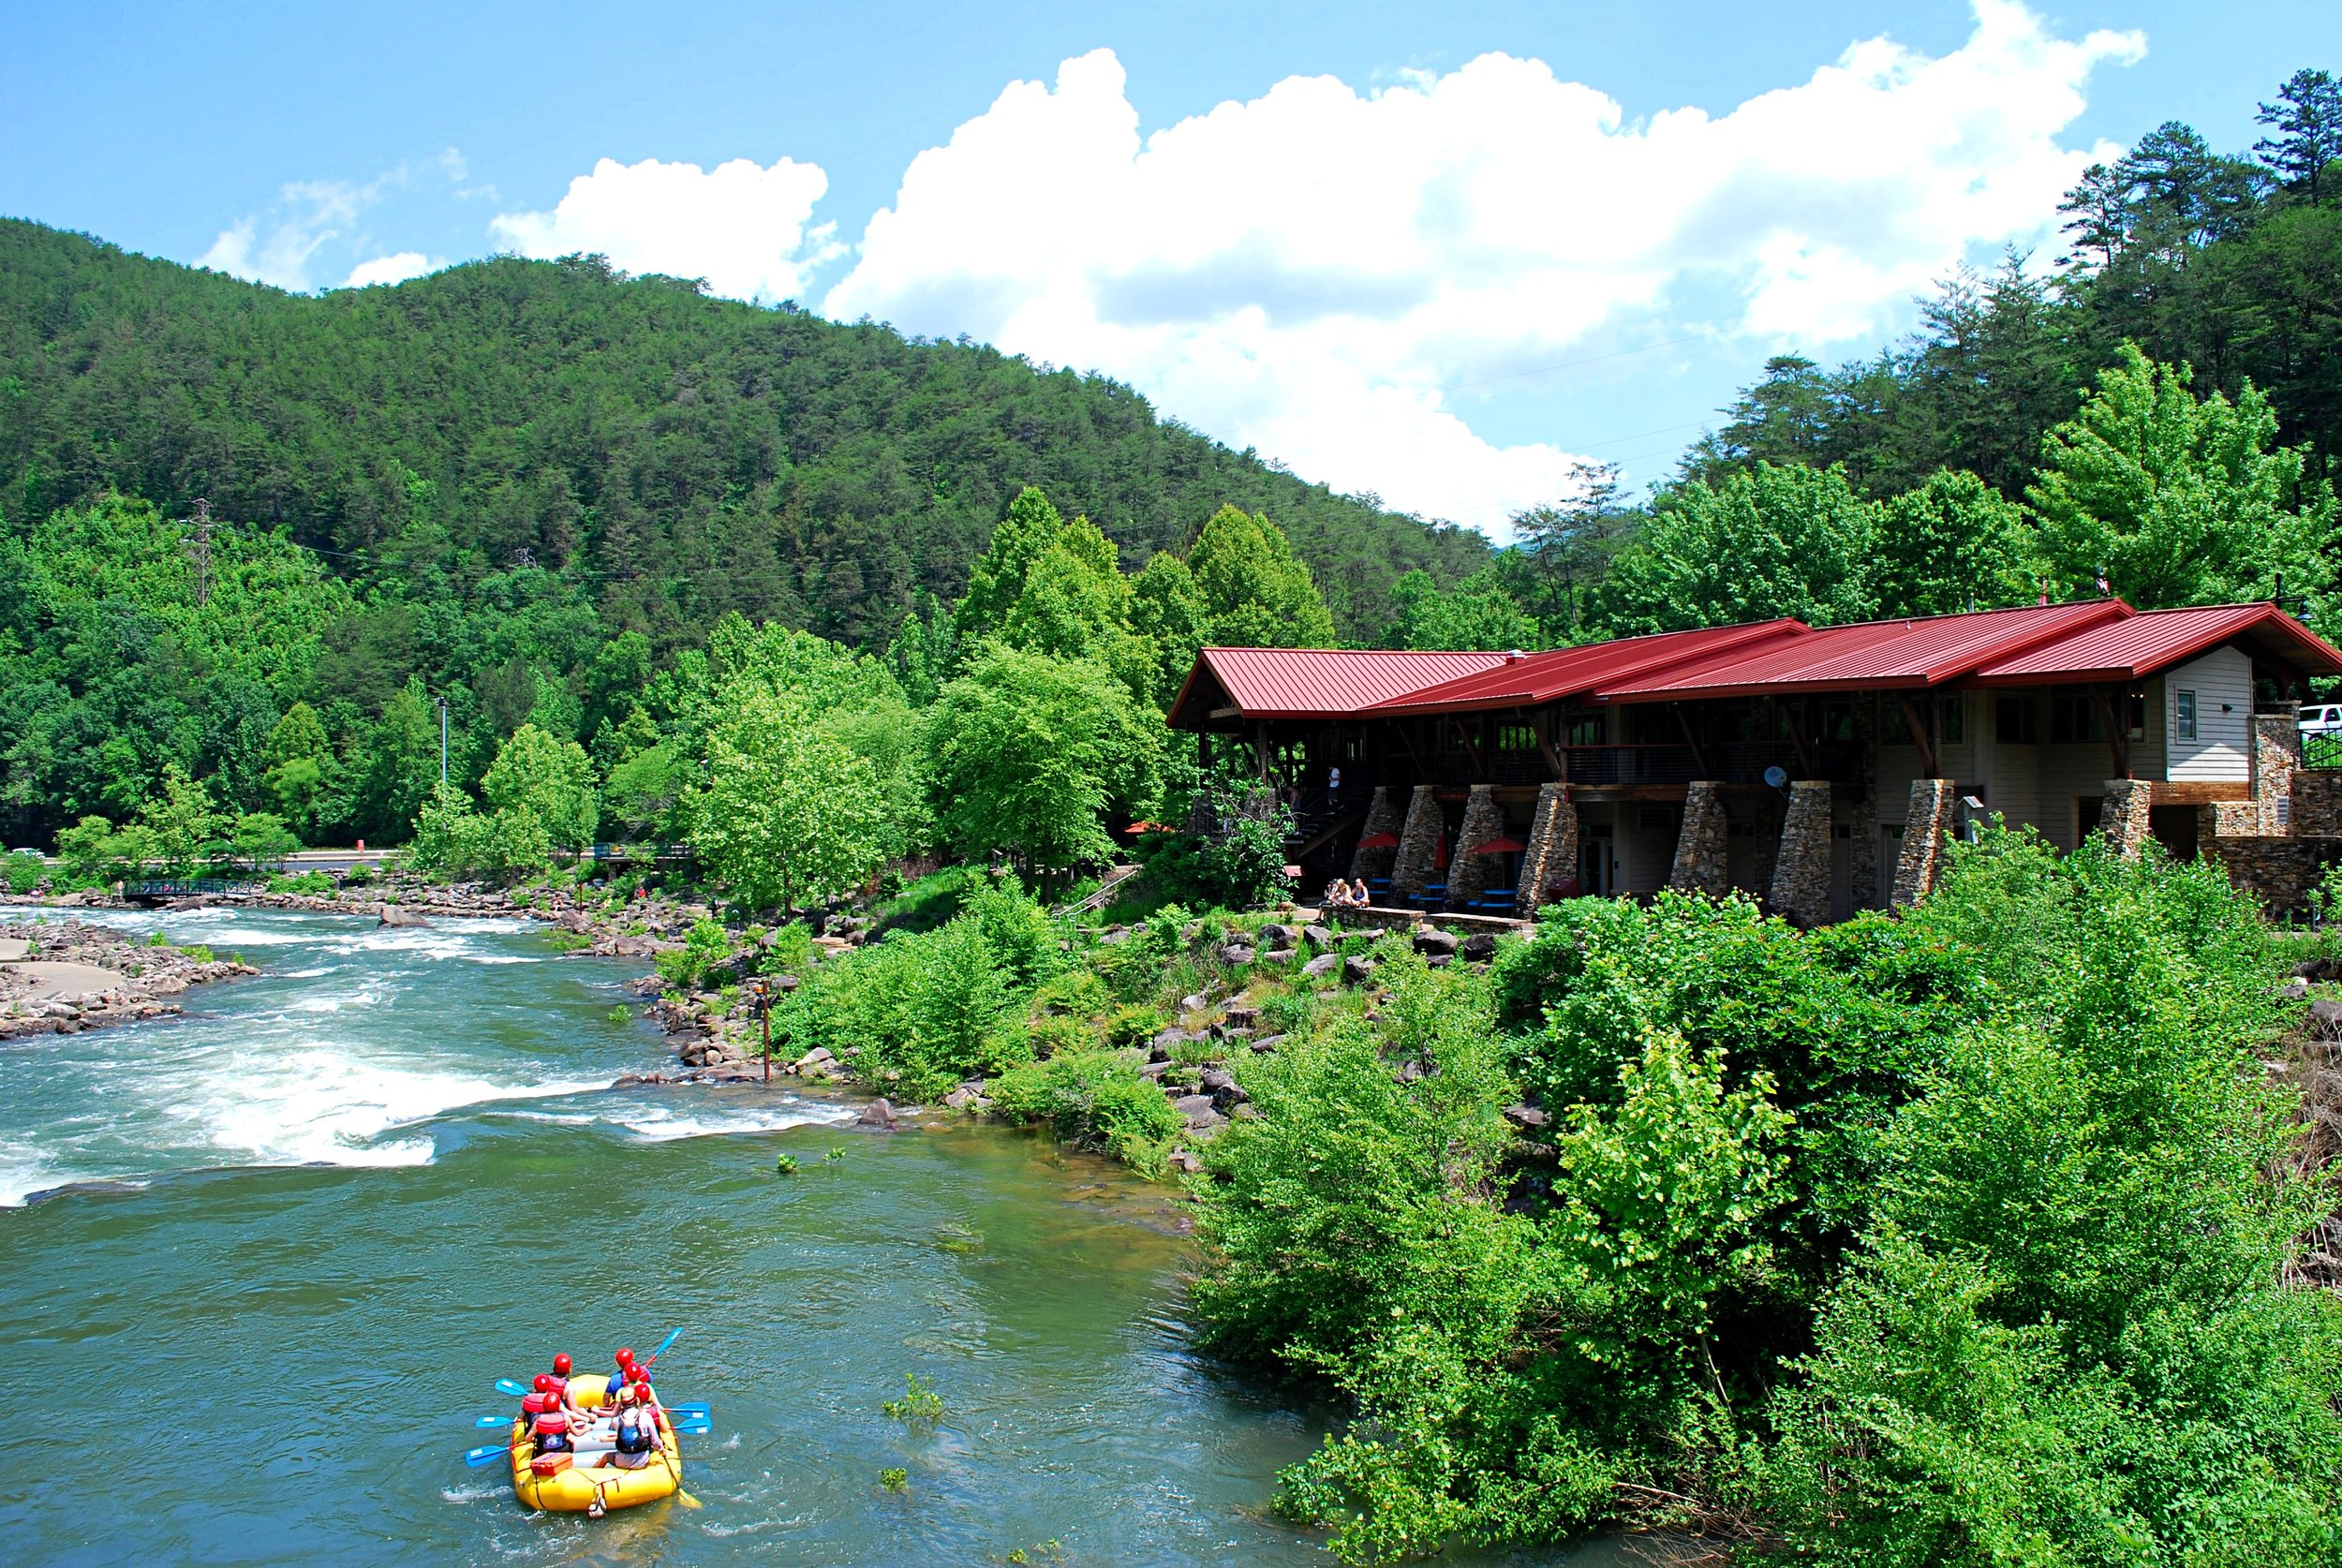 The Ocoee Whitewater Center. Photo: Bob Butters